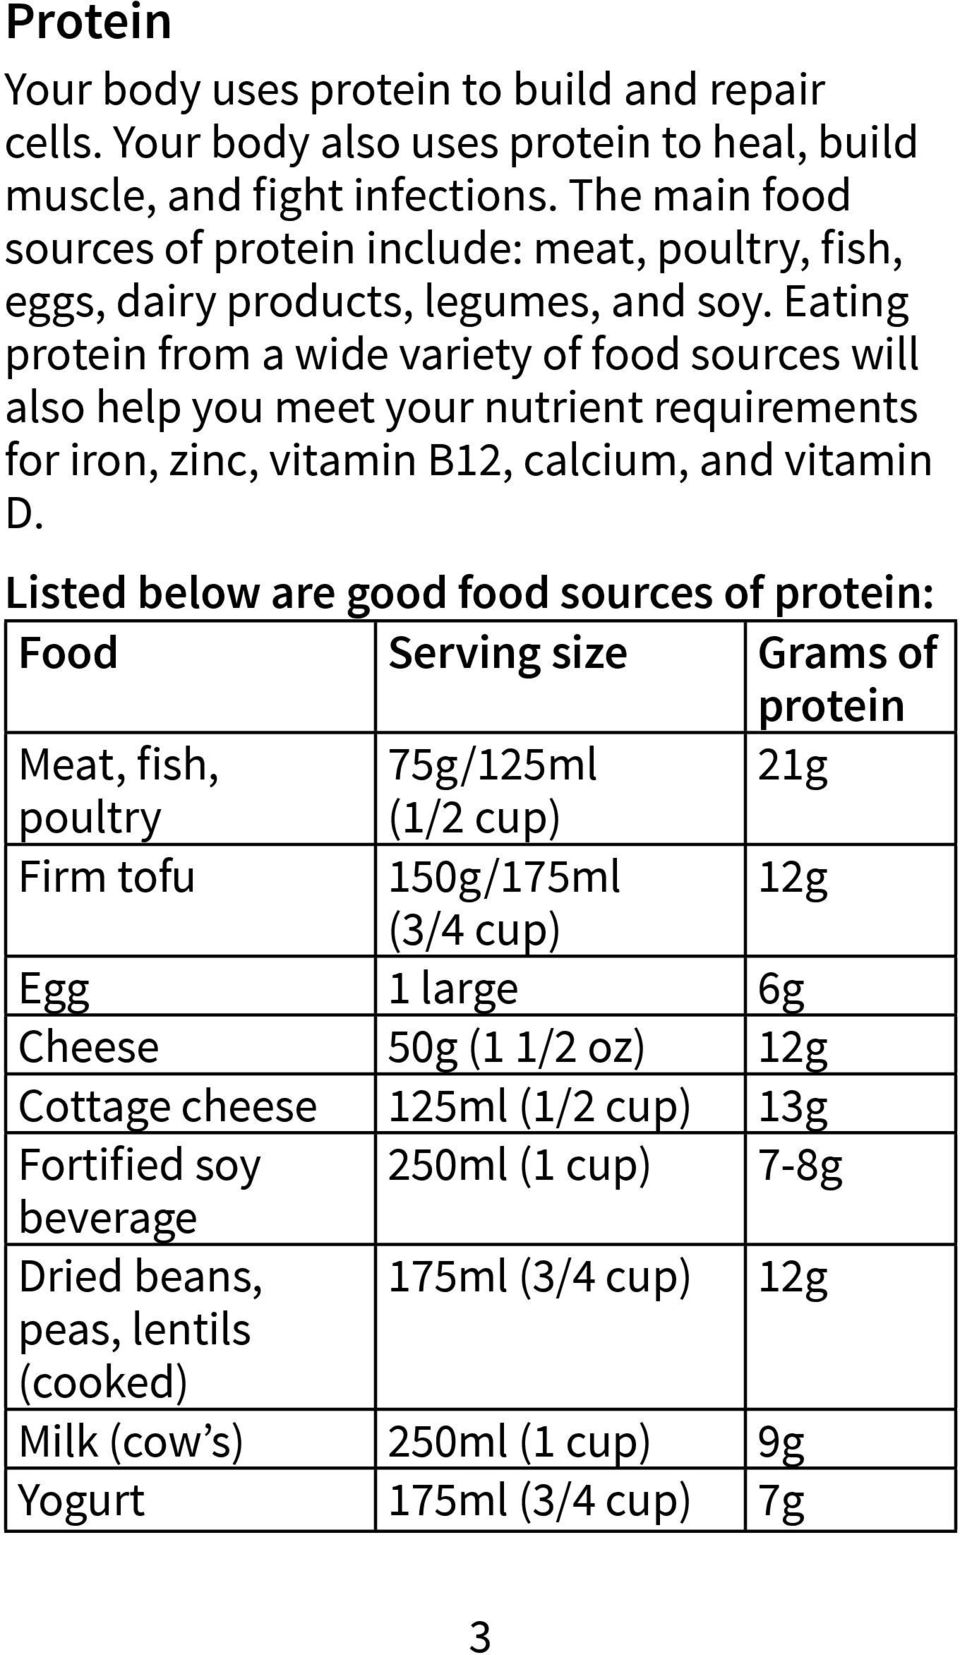 Eating protein from a wide variety of food sources will also help you meet your nutrient requirements for iron, zinc, vitamin B12, calcium, and vitamin D.